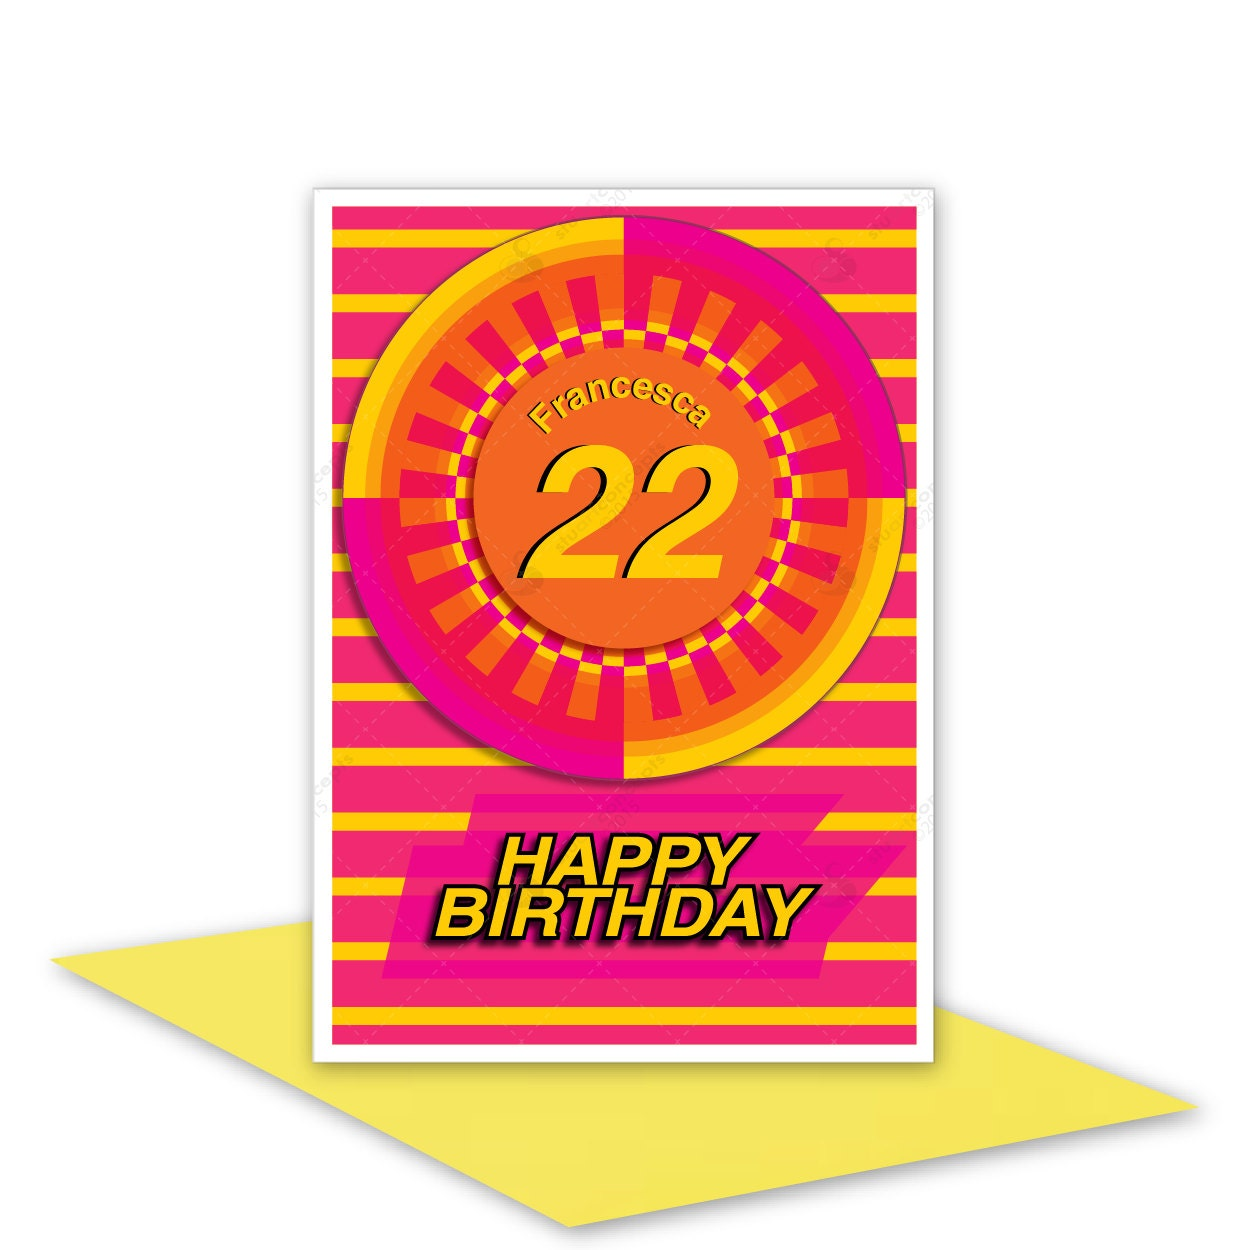 Personalised Happy Birthday Card NAME & AGE Edit For Sister